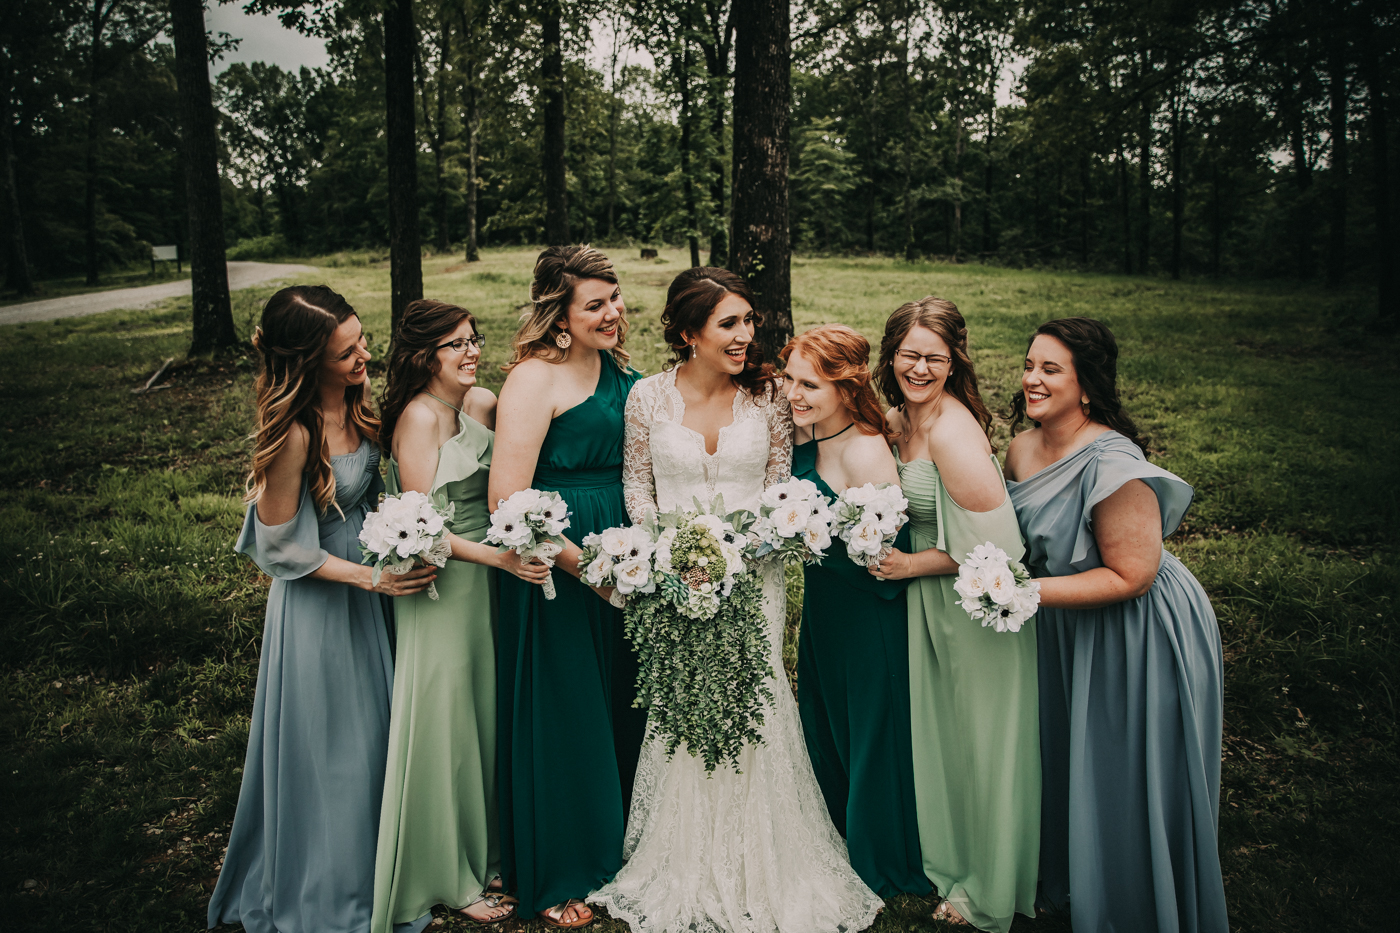 Burdoc Farms wedding by Billie-Shaye Style Photography featured on Nashville Bride Guide!